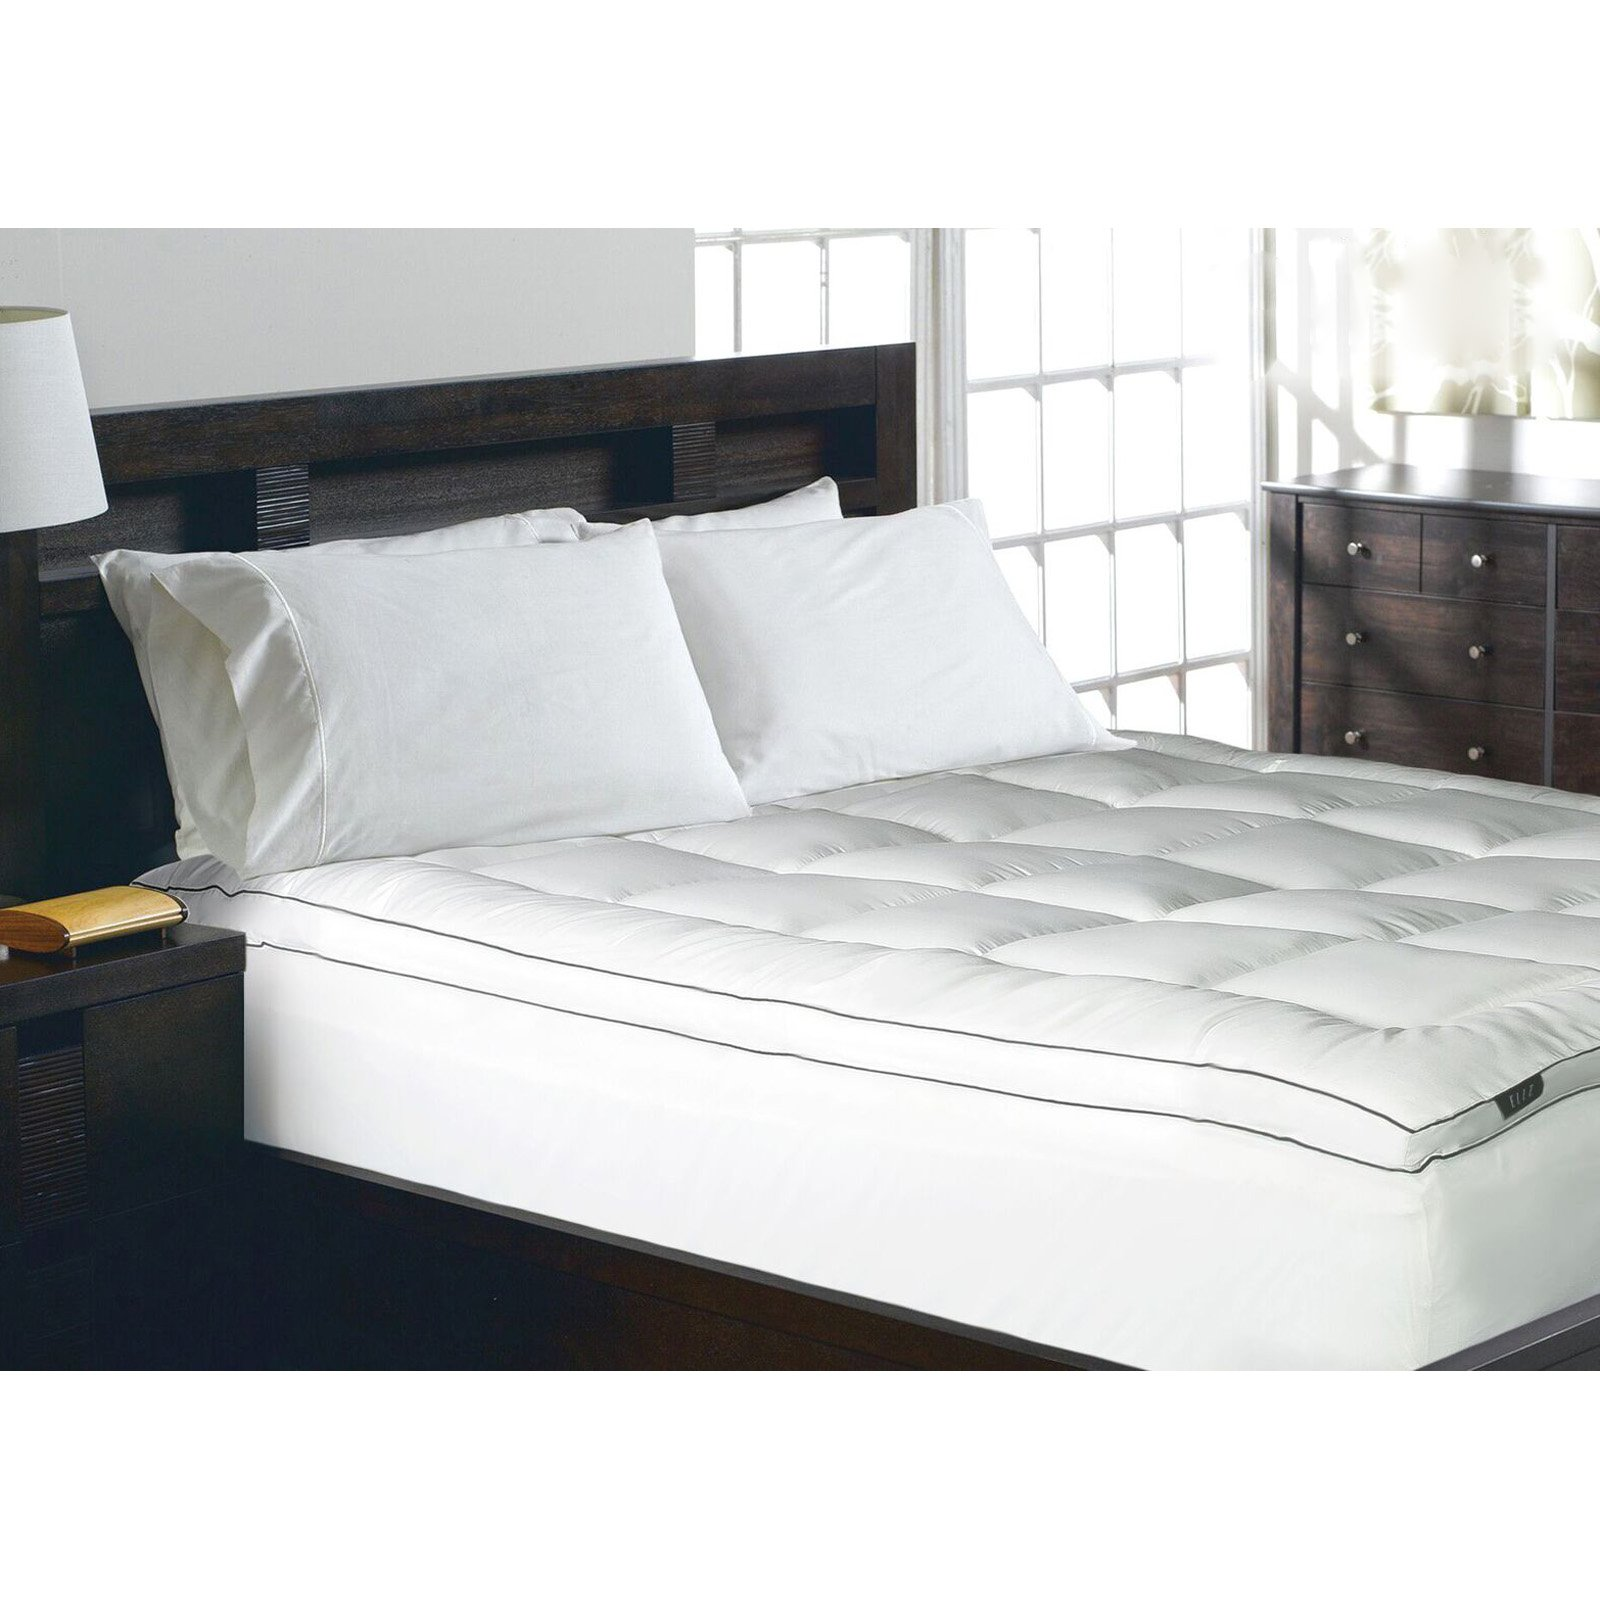 Elle Home 1200 Thread Count Mattress Topper